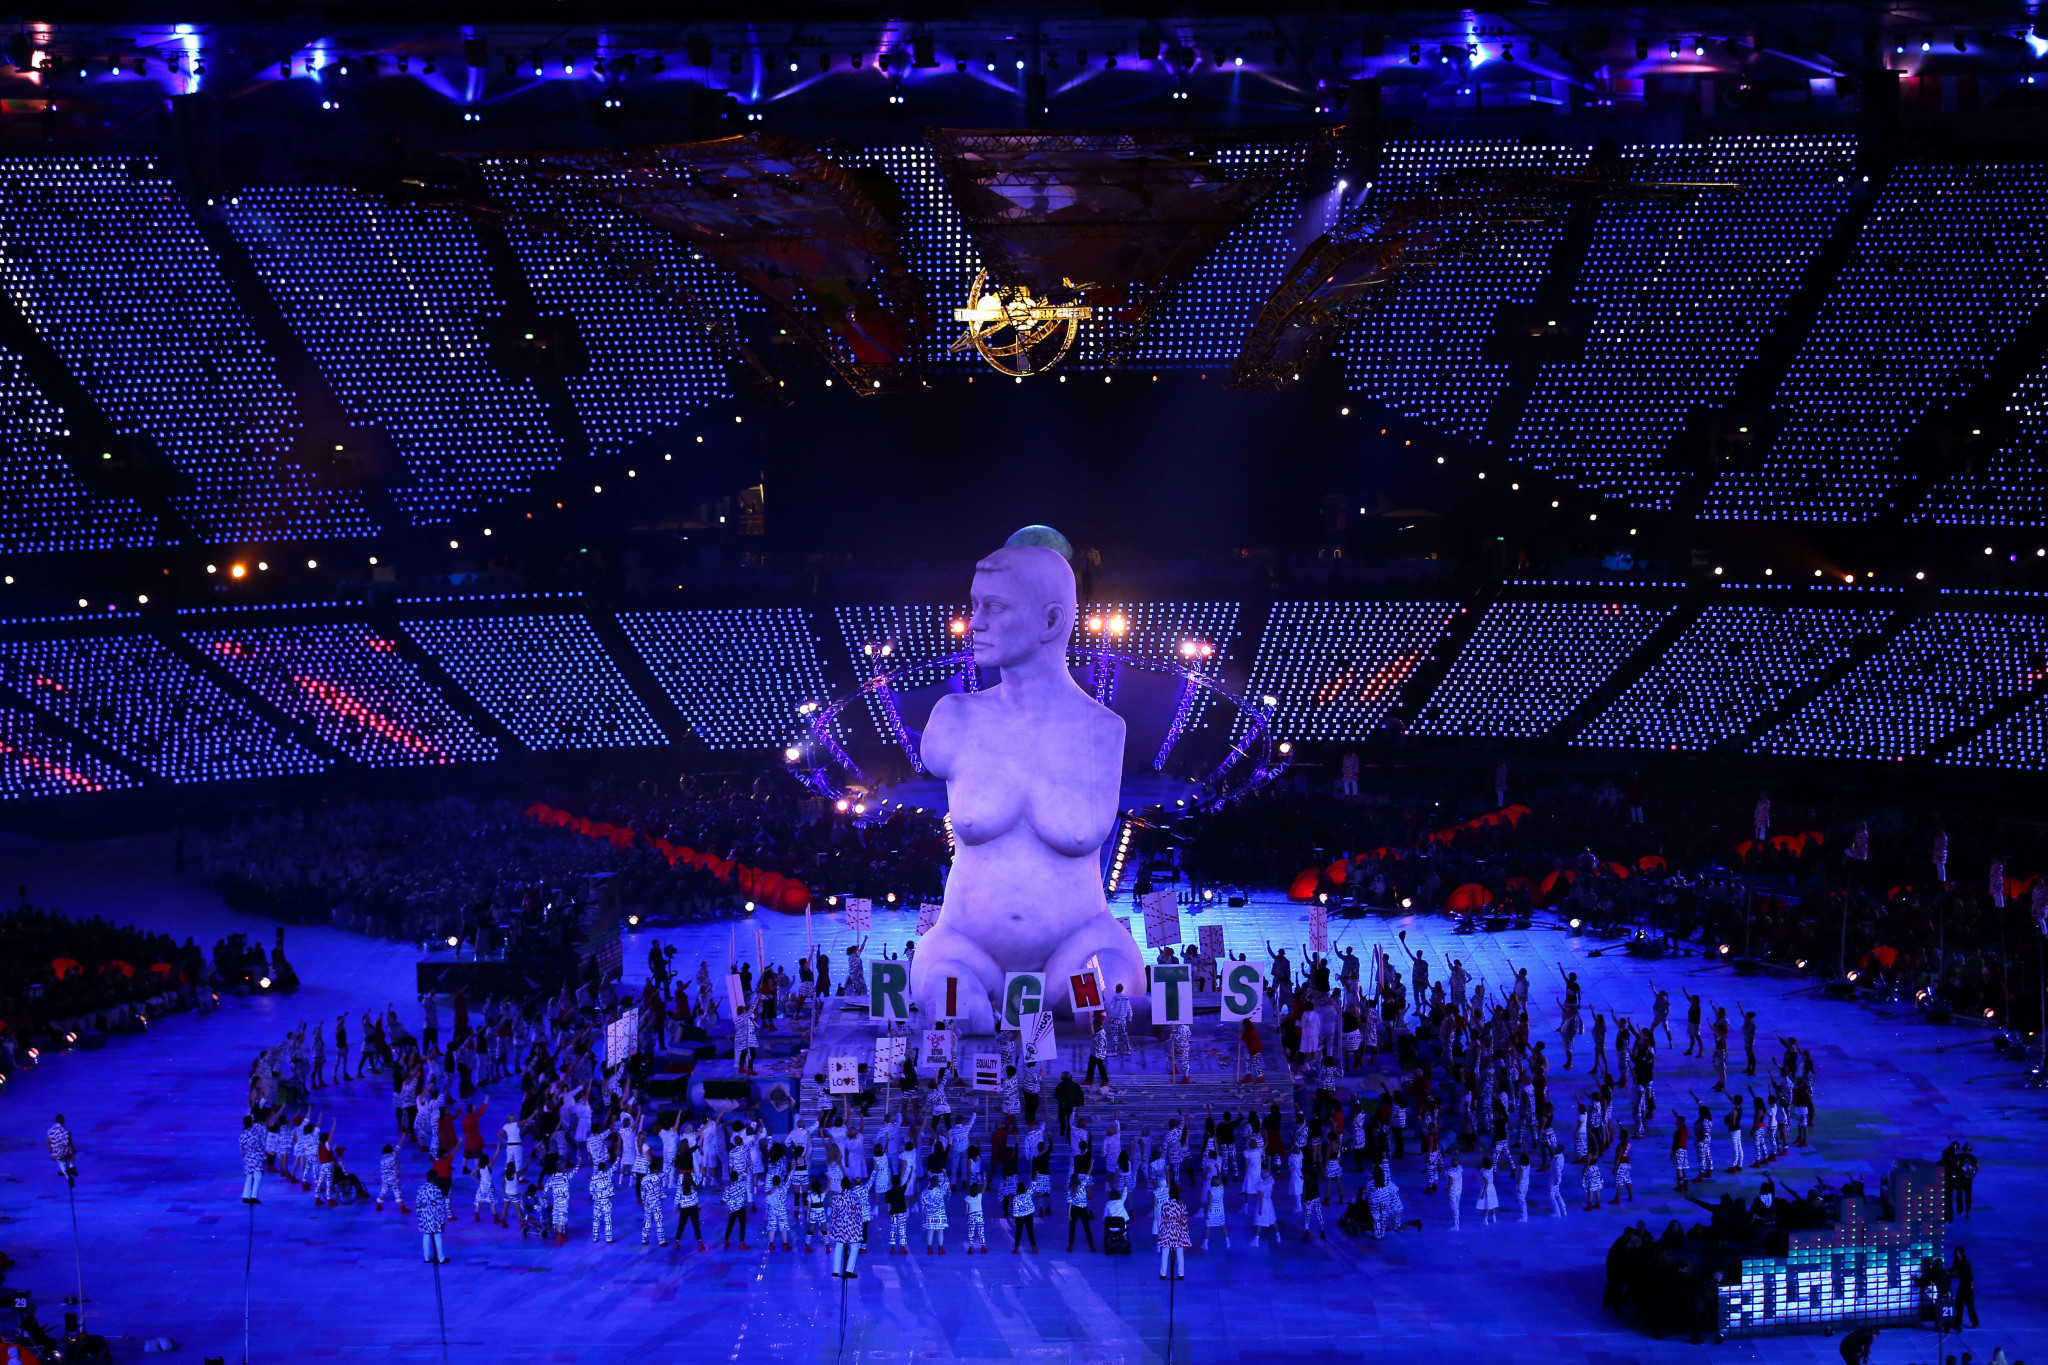 Artists perform during the opening ceremony of the London 2012 Paralympic Games at the Olympic Stadium in east London on August 29, 2012 ©Getty Images